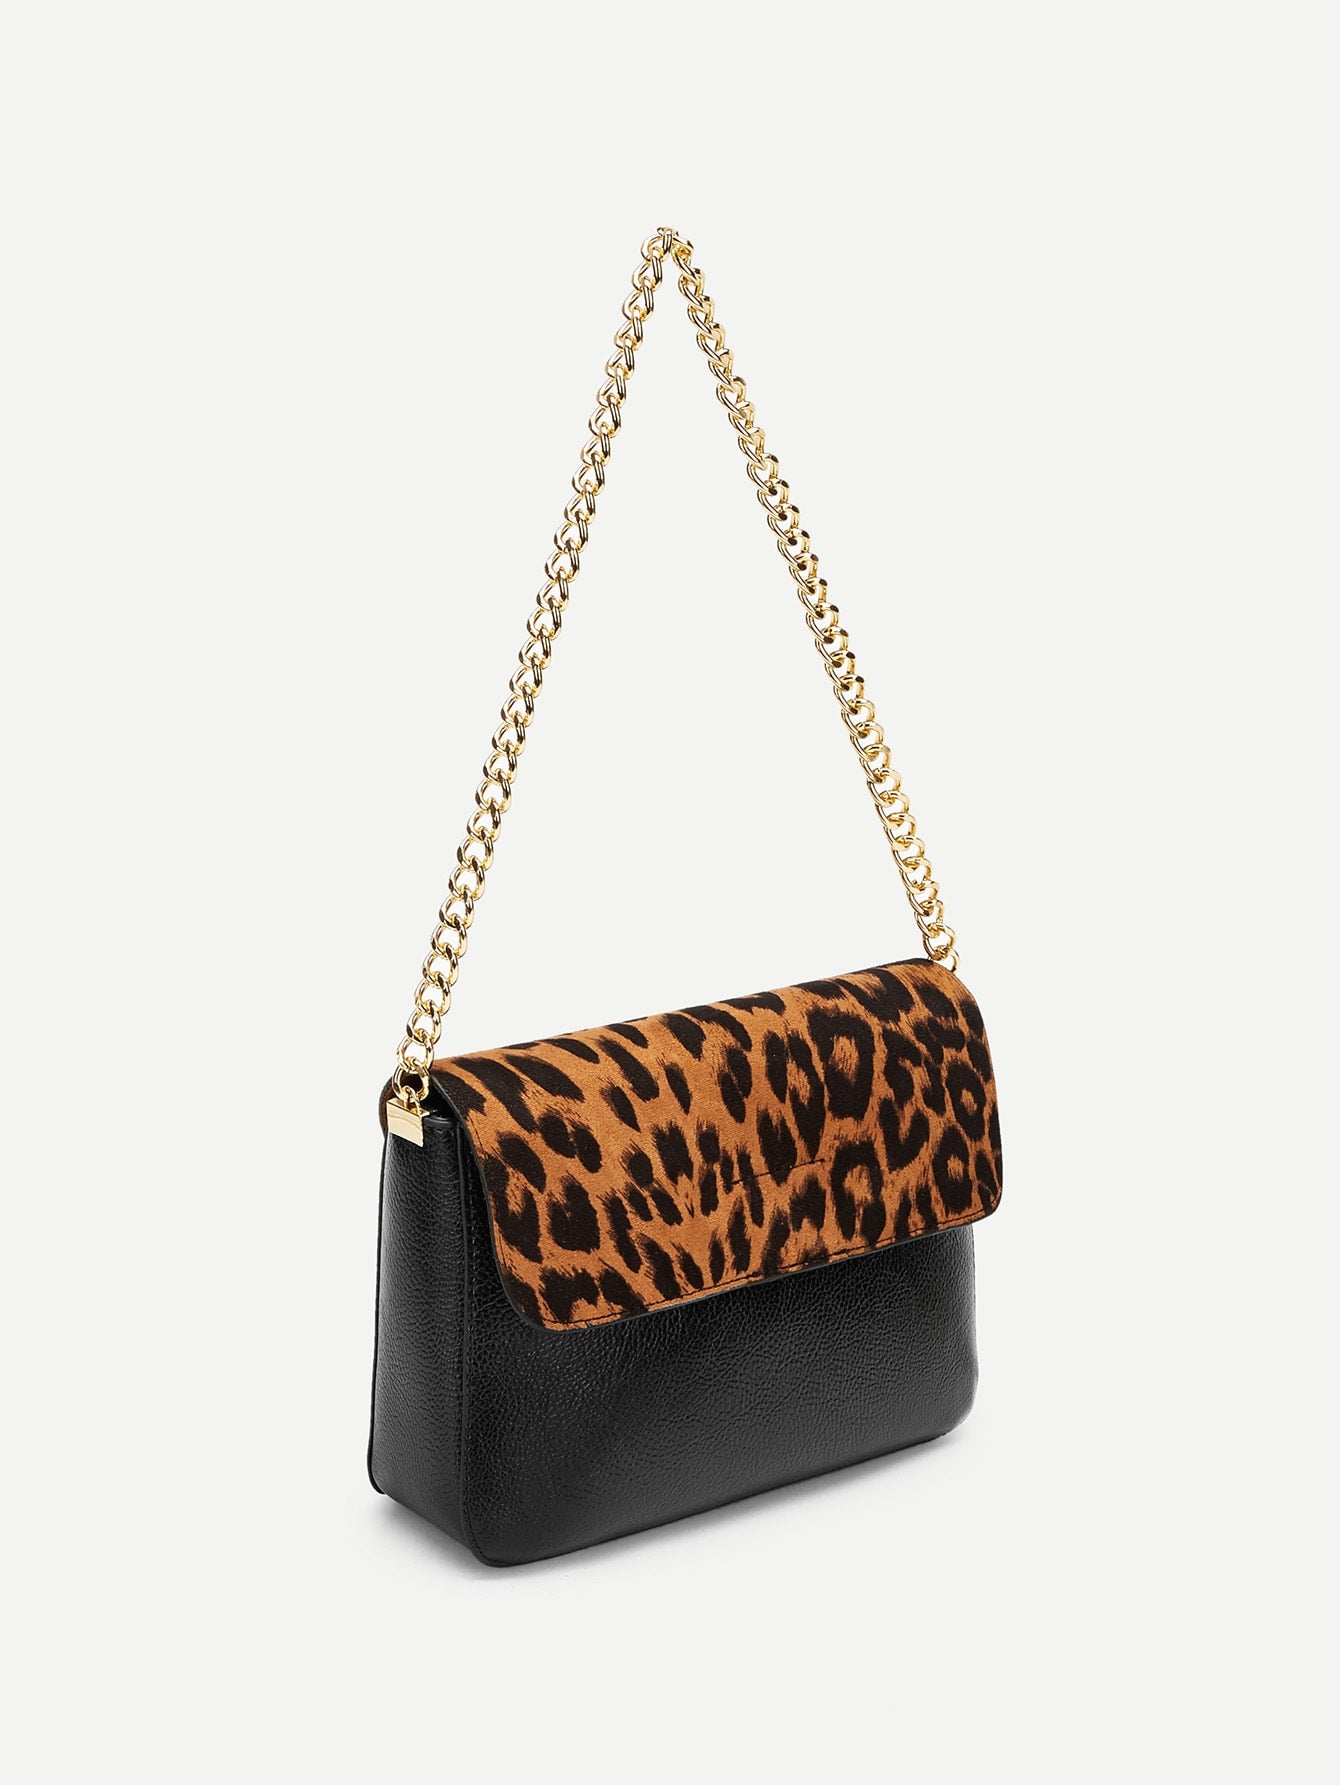 Leopard Shape New Chain Satchel Bag - BrandsGuru